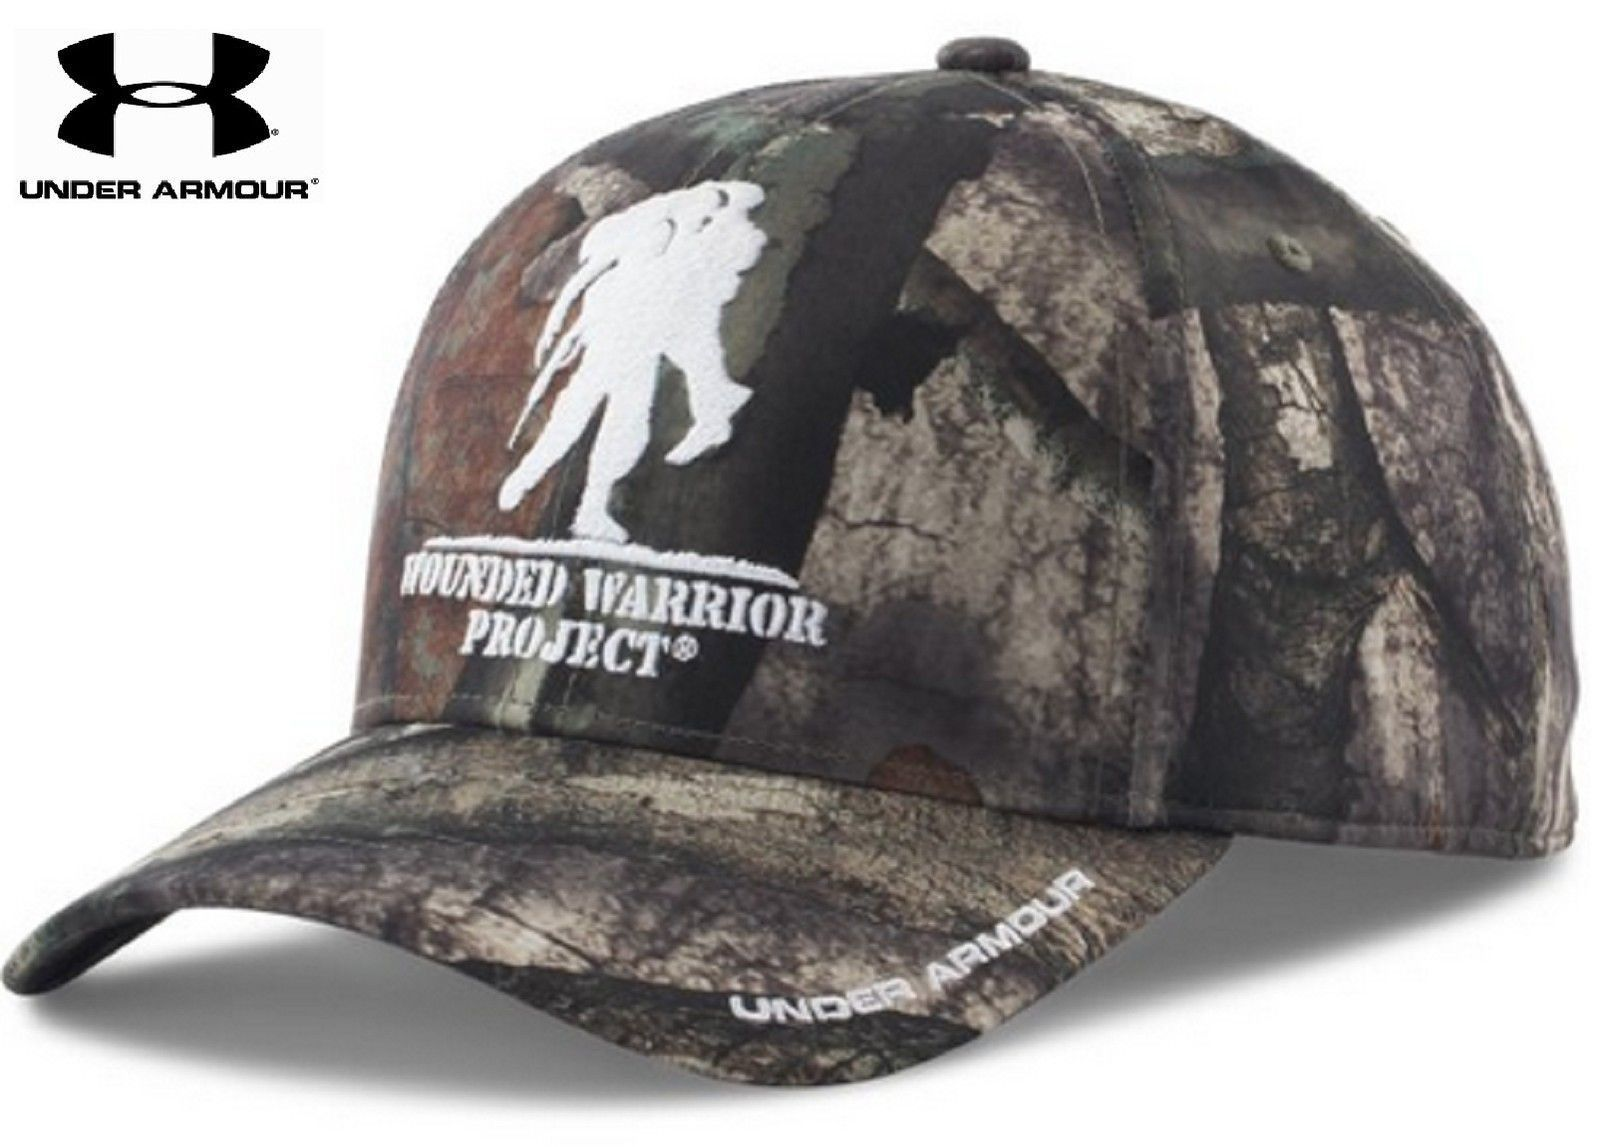 Under Armour Wounded Warrior Project Camo Snap Cap - Mens UA Embroidered  WWP Hat 6ce7deccb7d4